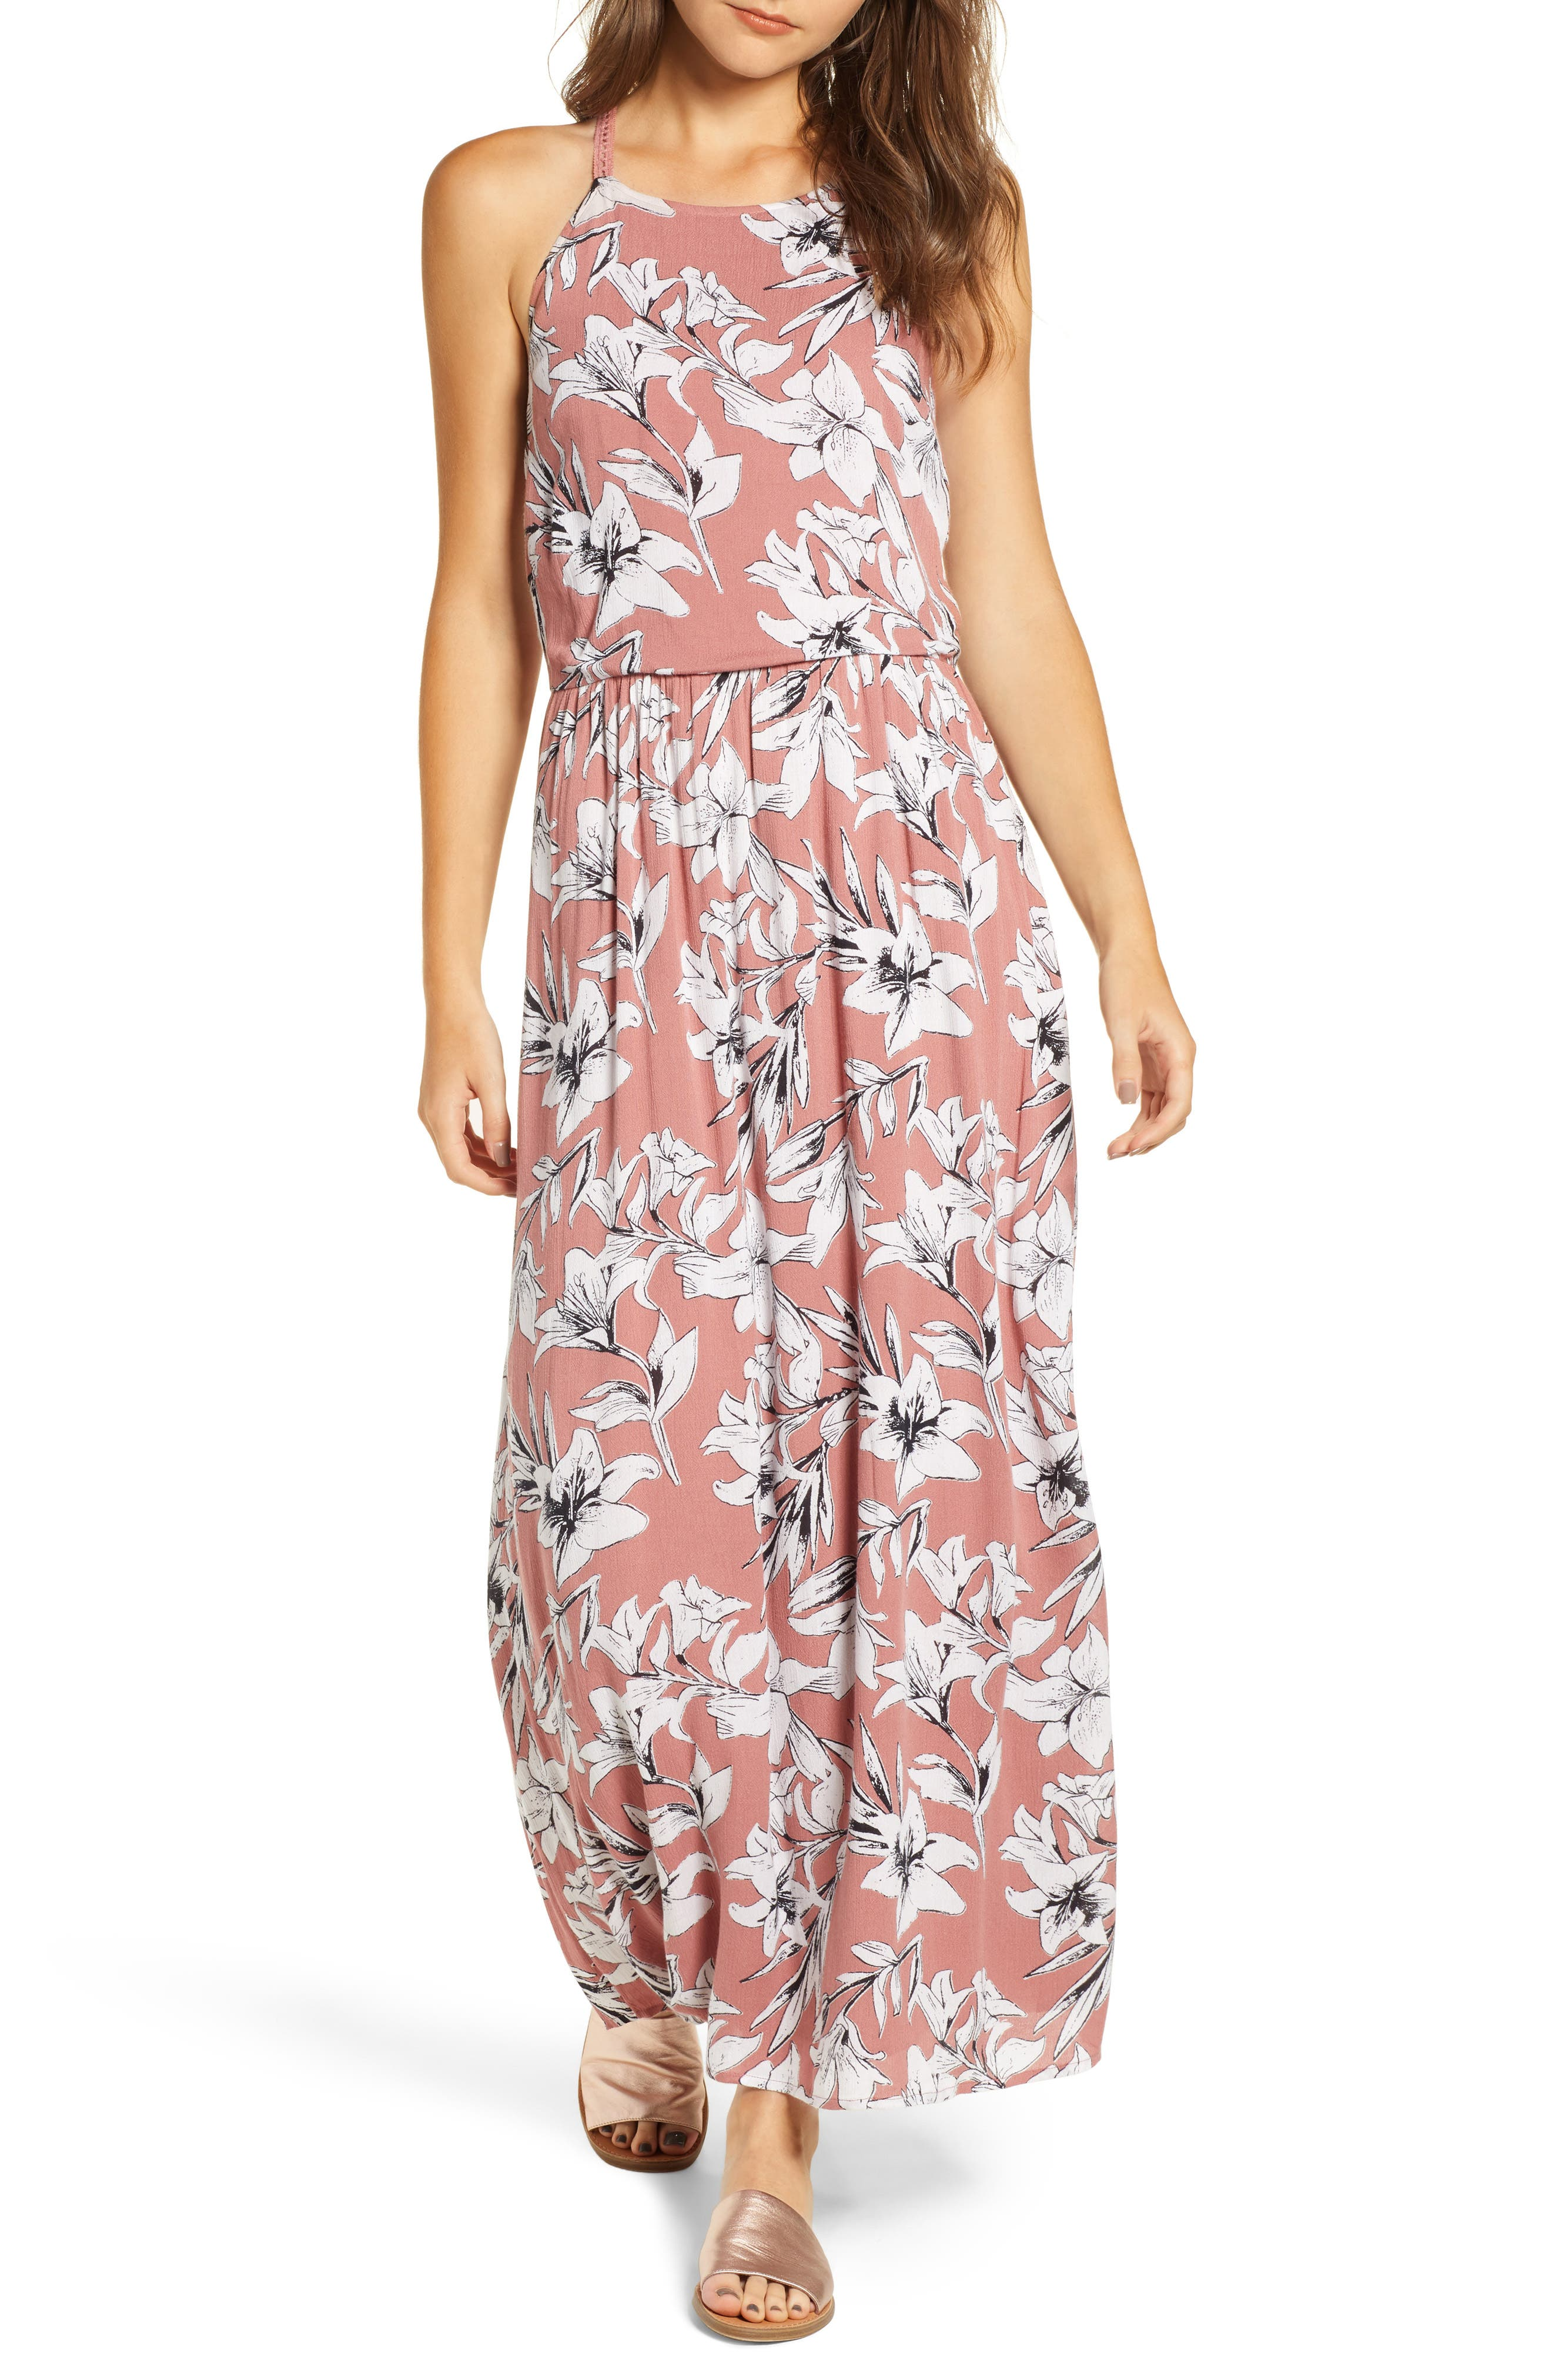 Pavement Border Maxi Dress,                             Main thumbnail 1, color,                             WITHERED ROSE LILY HOUSE